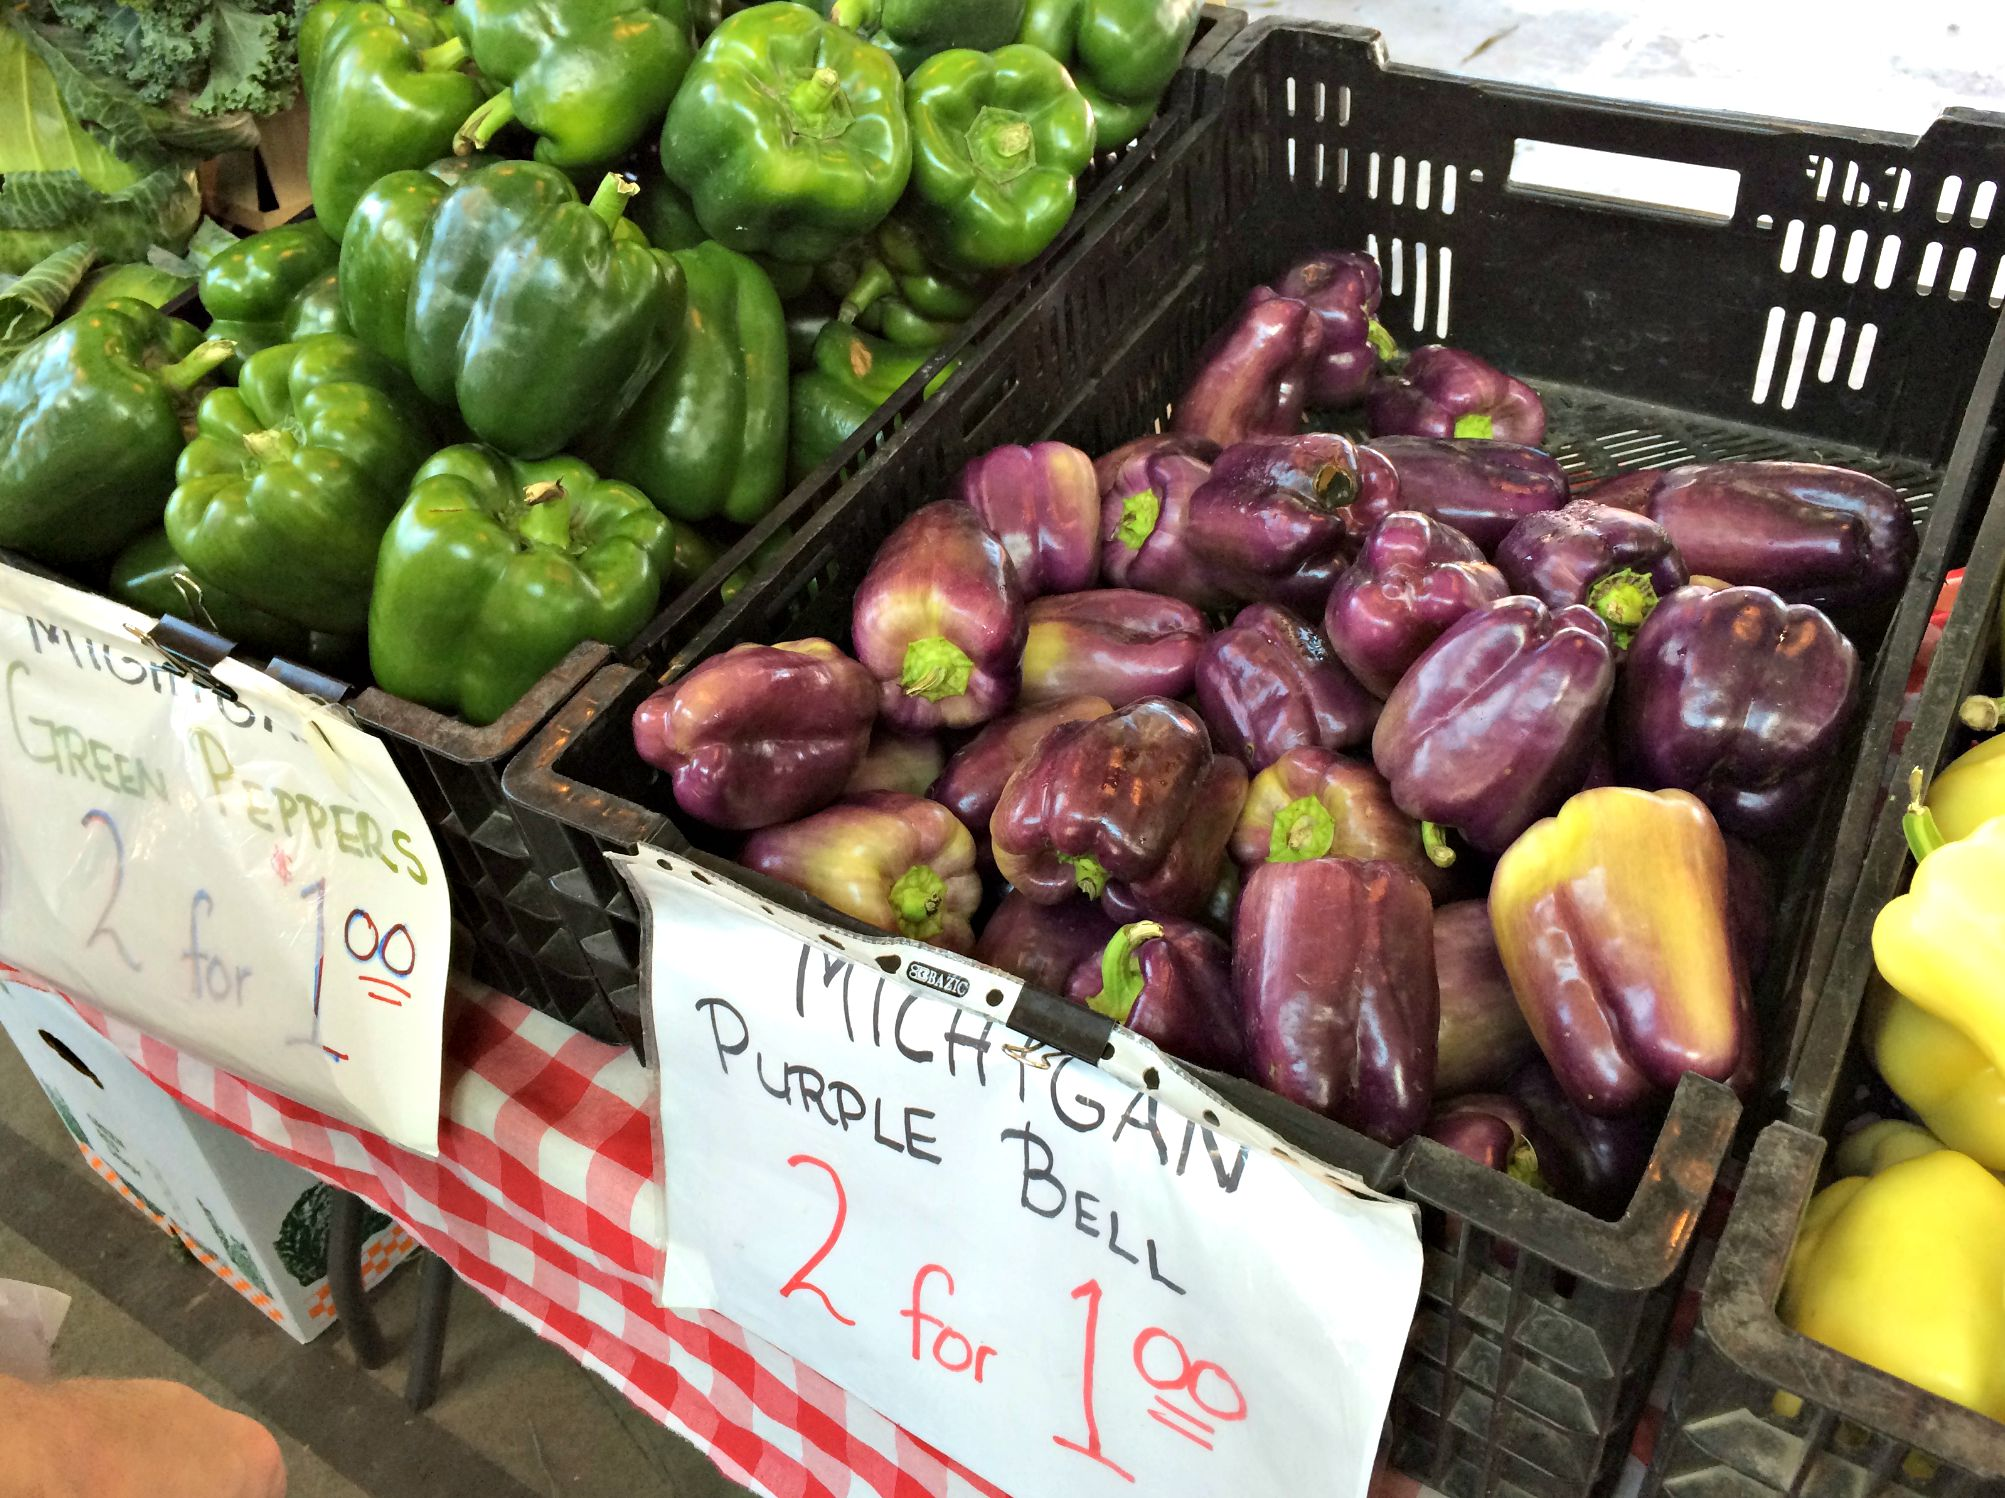 michigan purple bell peppers